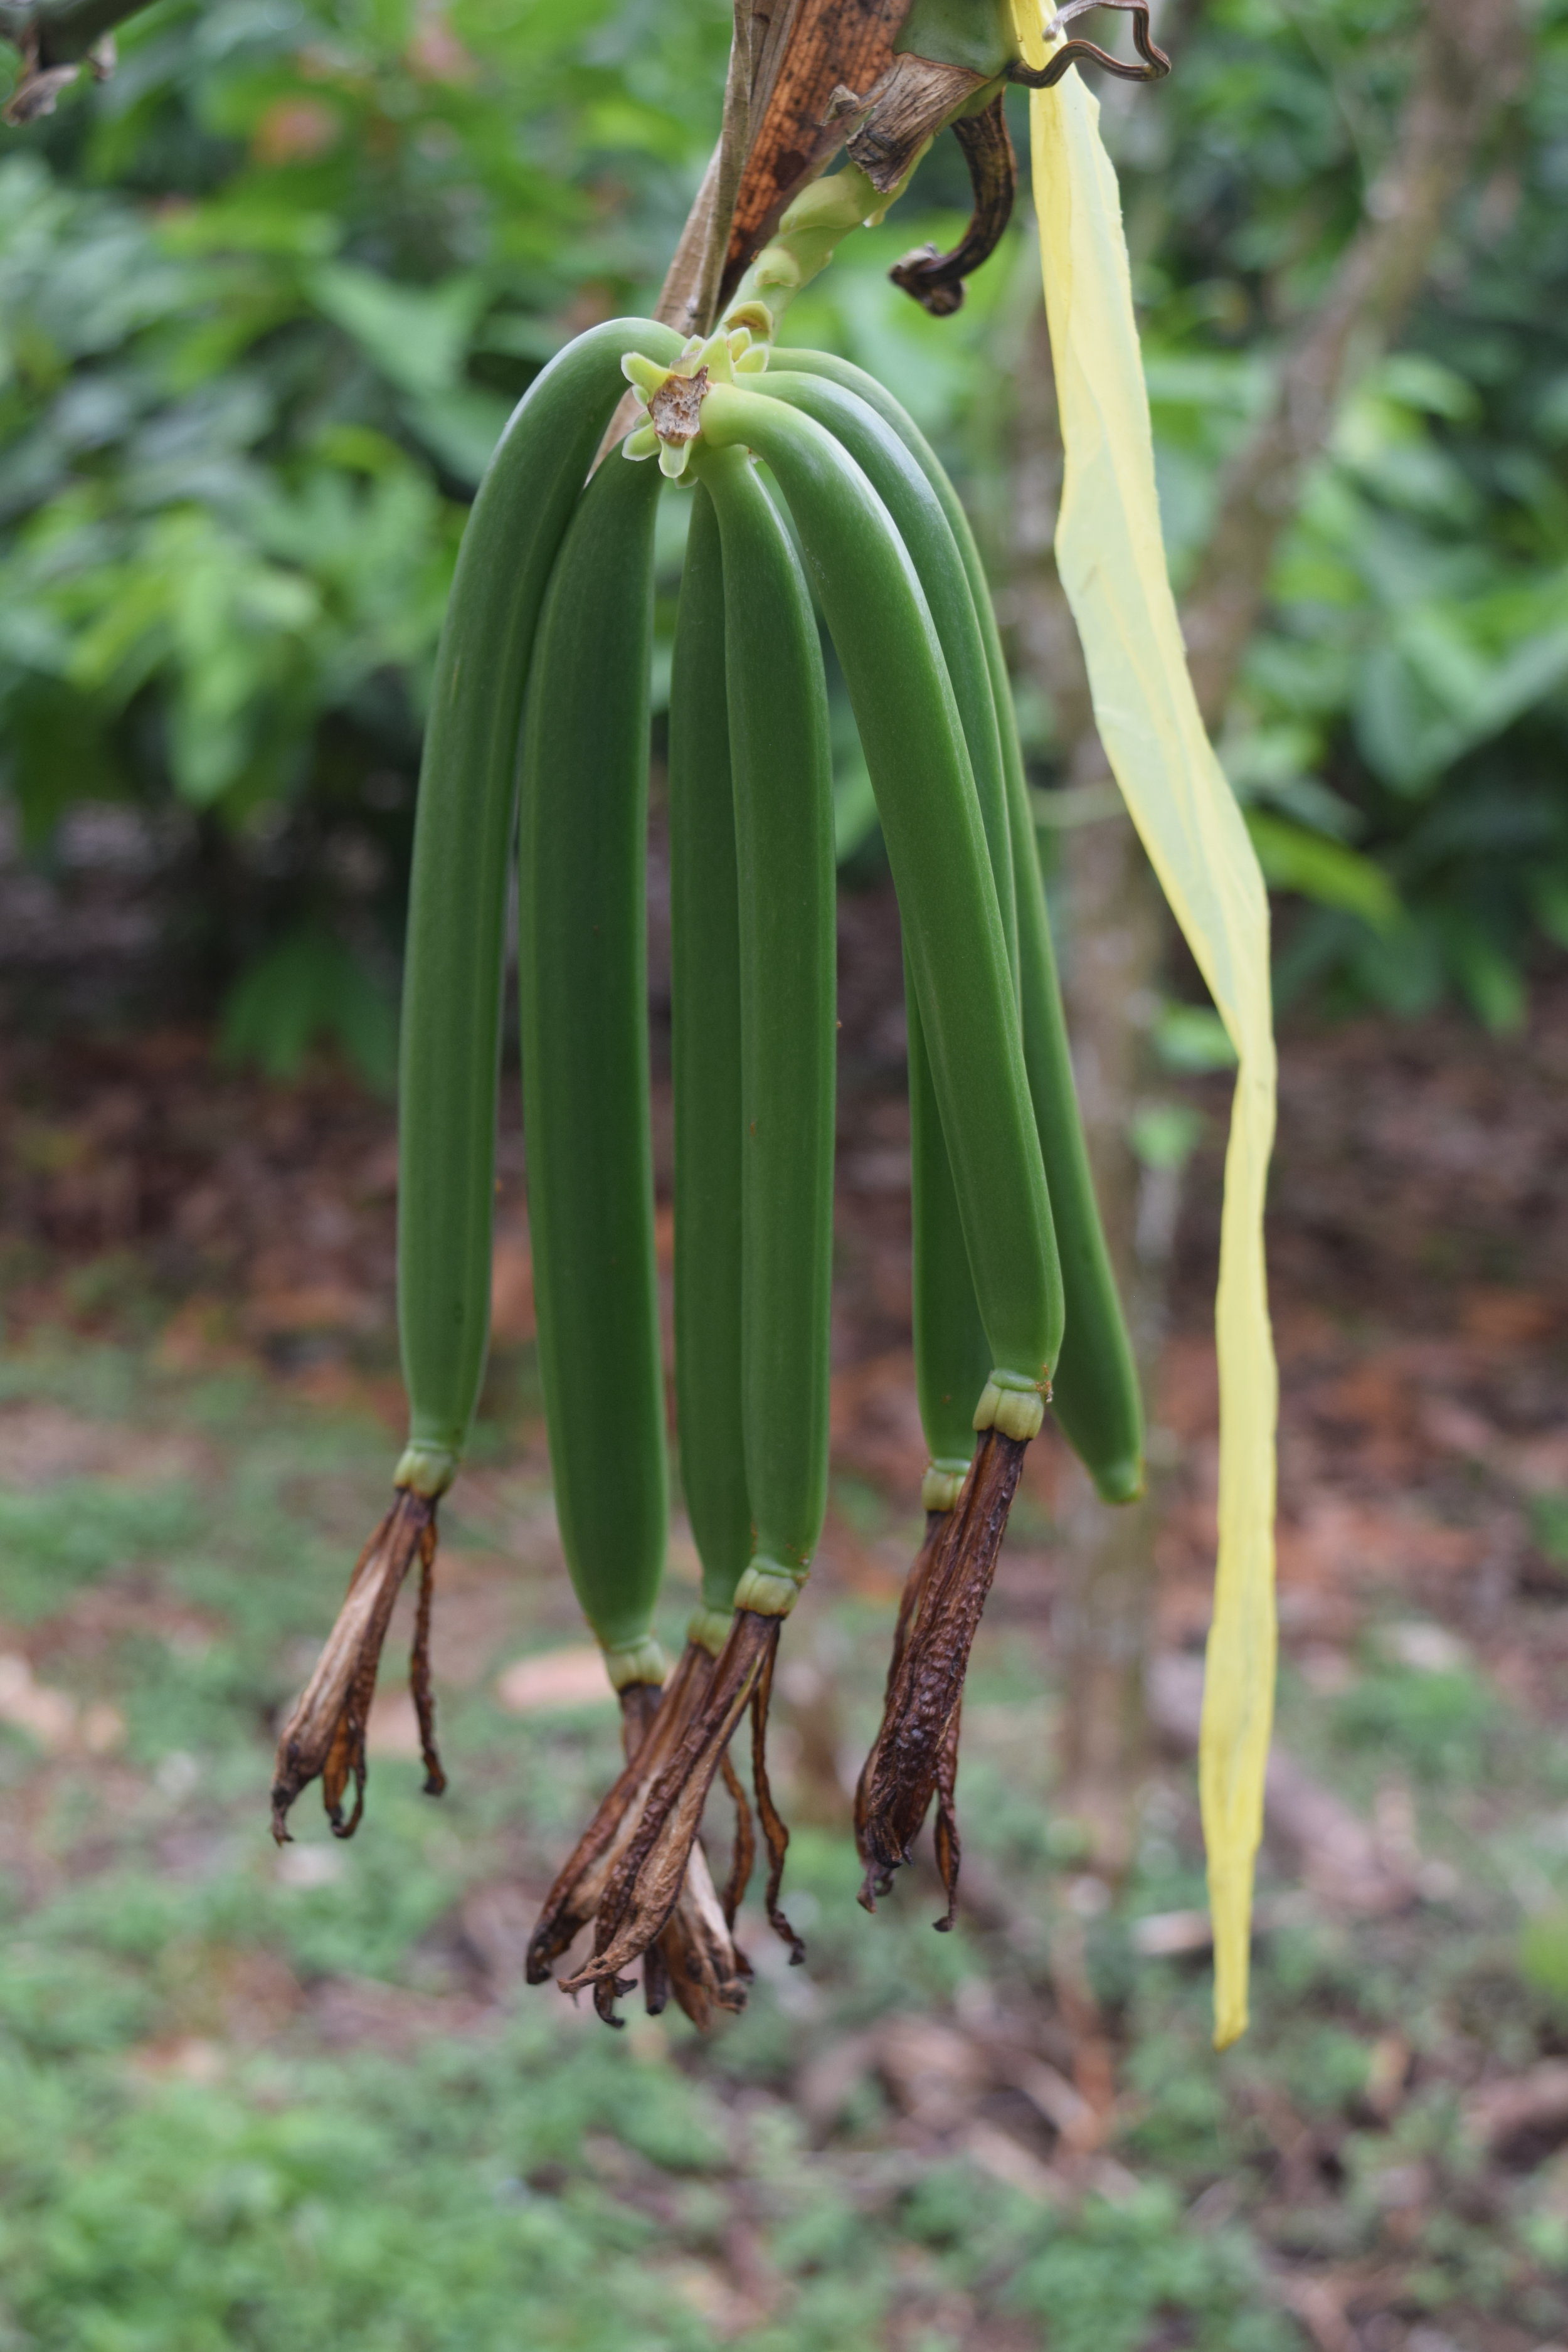 Vanilla pods growing to full size a few months after pollination.